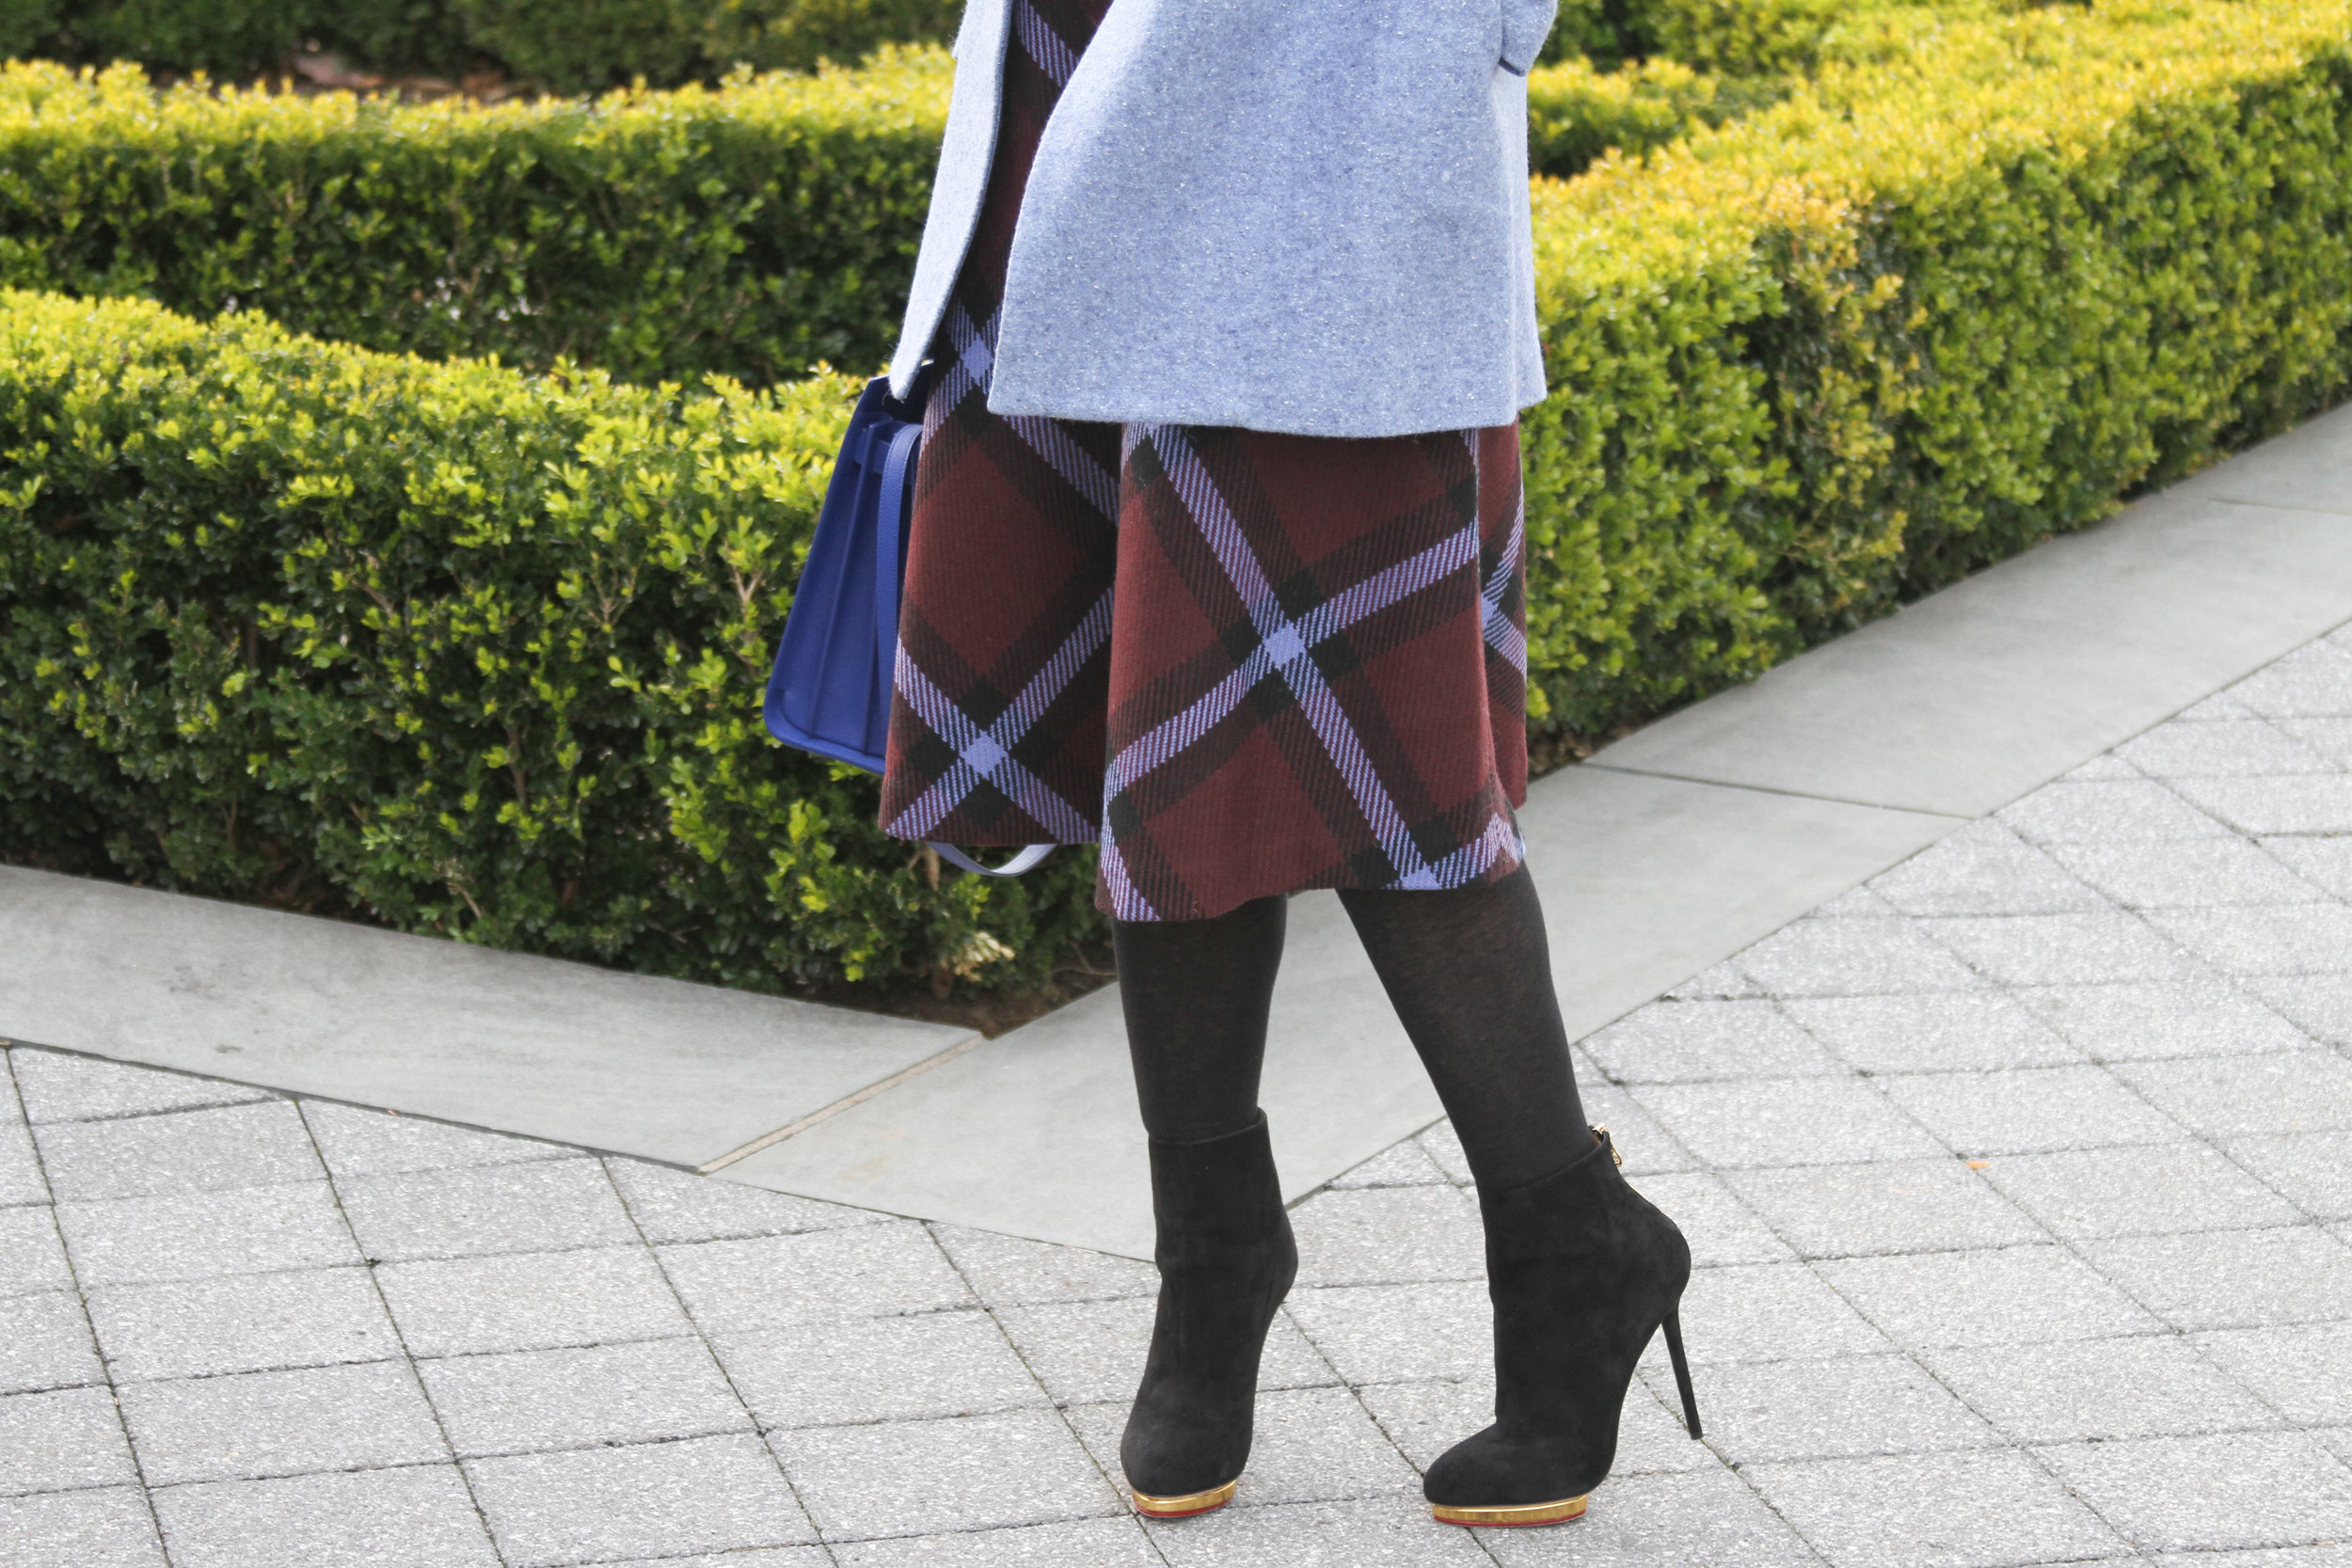 june lemon girl, junelemongirl, street fashion, new york street fashion, plaid skirt, midi skirt, plaid midi skirt, fashion blogger, new york fashion blogger, new york botanical garden, train show, checkers scarf, blue coat, blue sweater, wool coat, wide collar coat, black heels, Charlotte Olympia heels